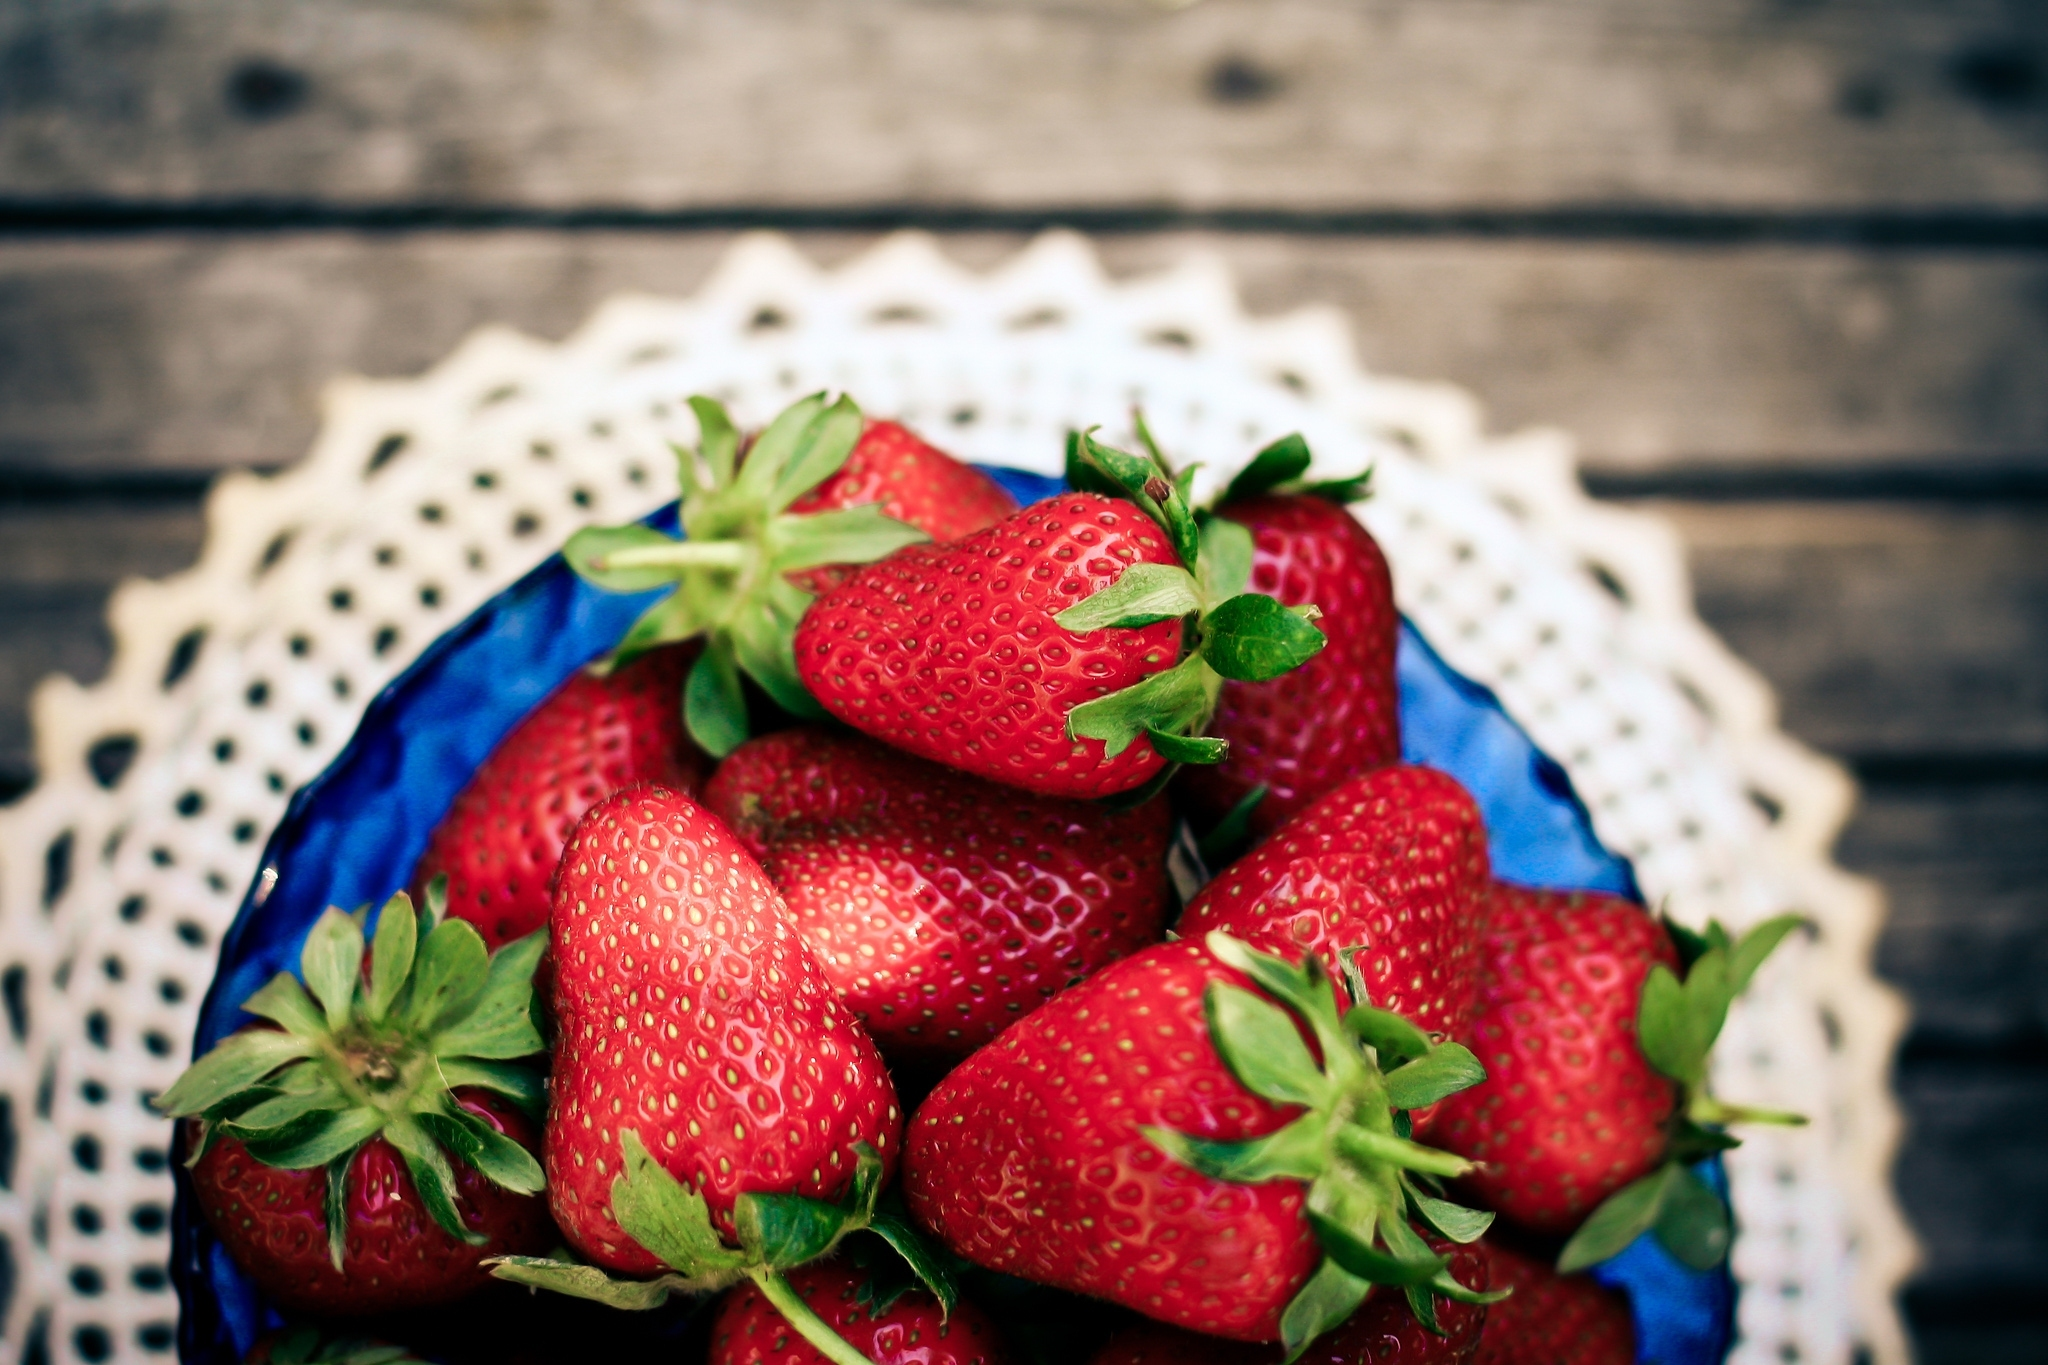 57705 download wallpaper Food, Strawberry, Berries, Plate, Napkin screensavers and pictures for free